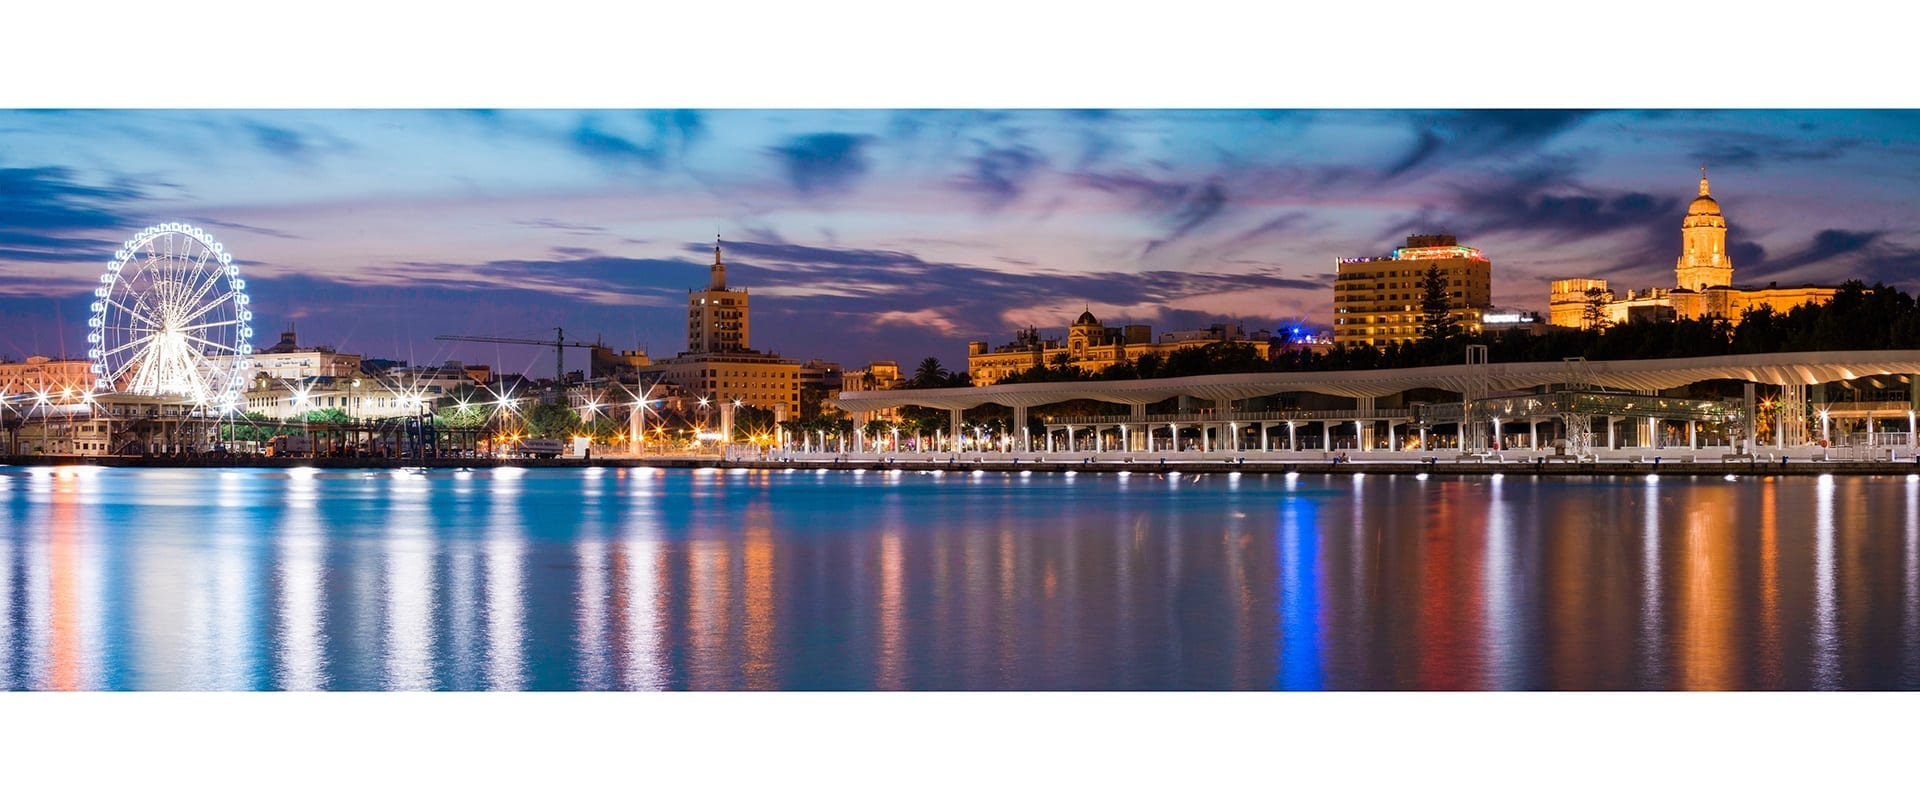 Panorama Picture of a city close to a river at night   many single pictures of a city close to a river at night   virtual reality & panorama pictures service